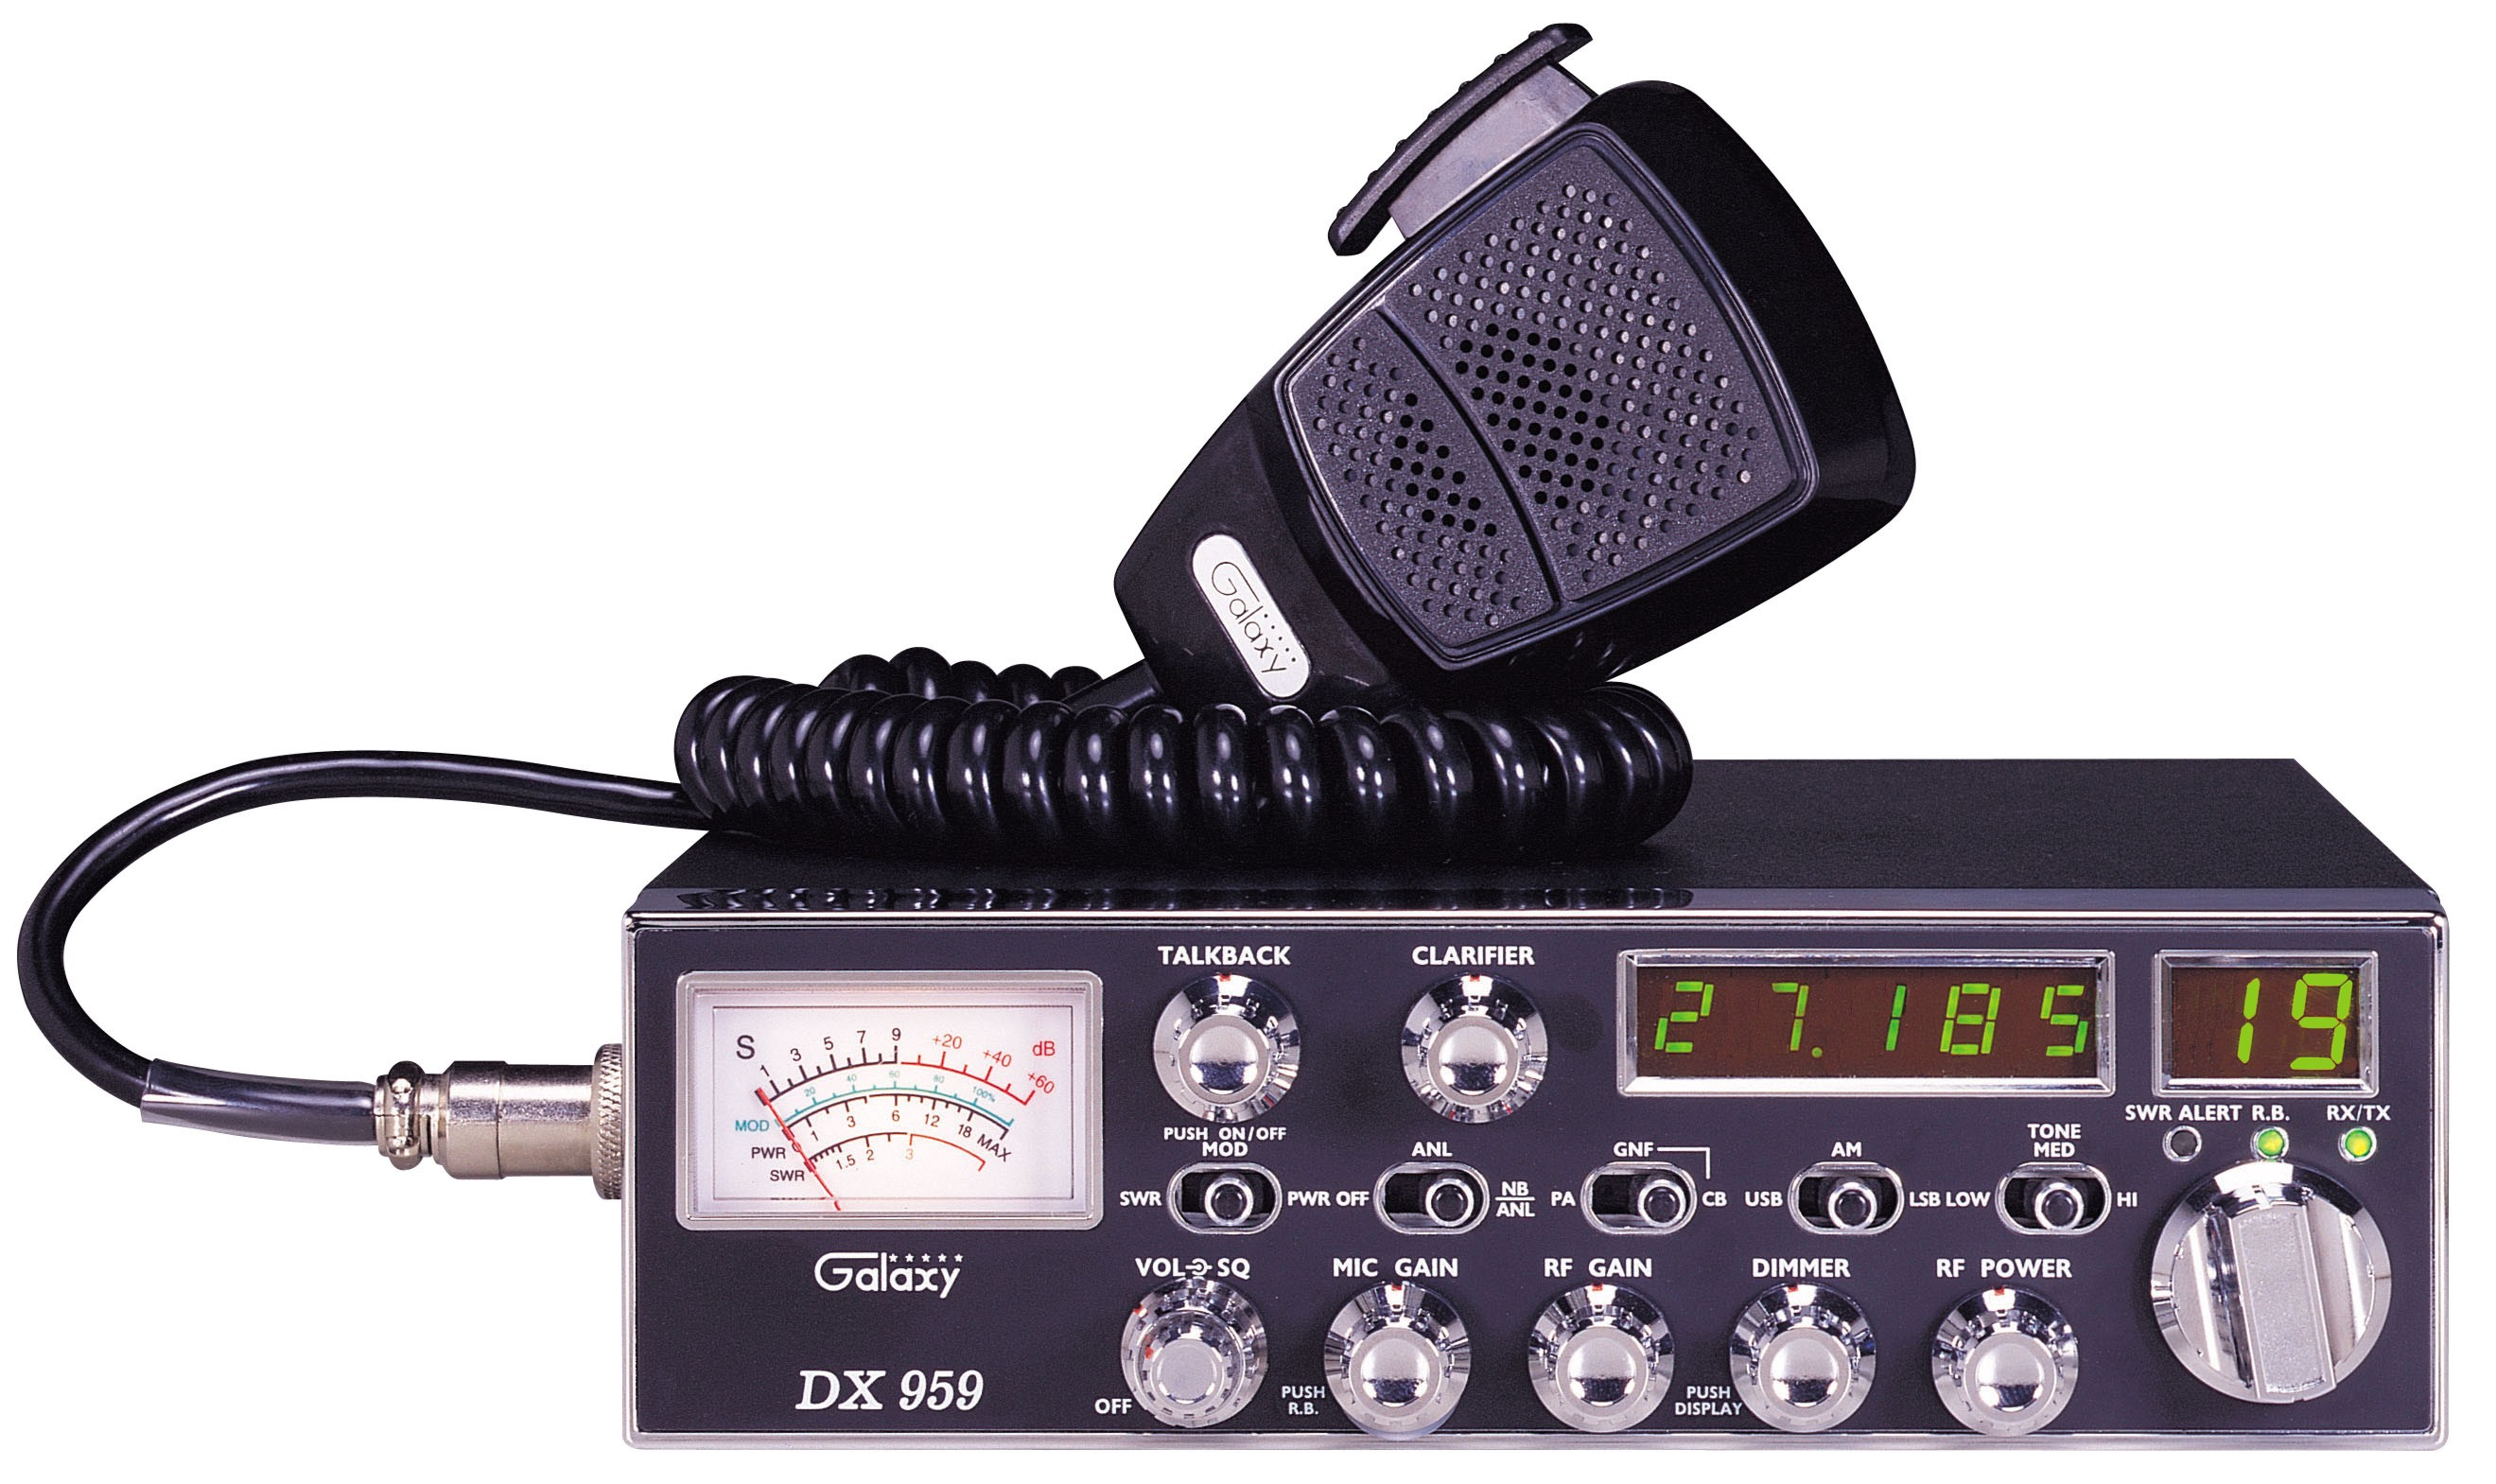 Galaxy cb radios for sale